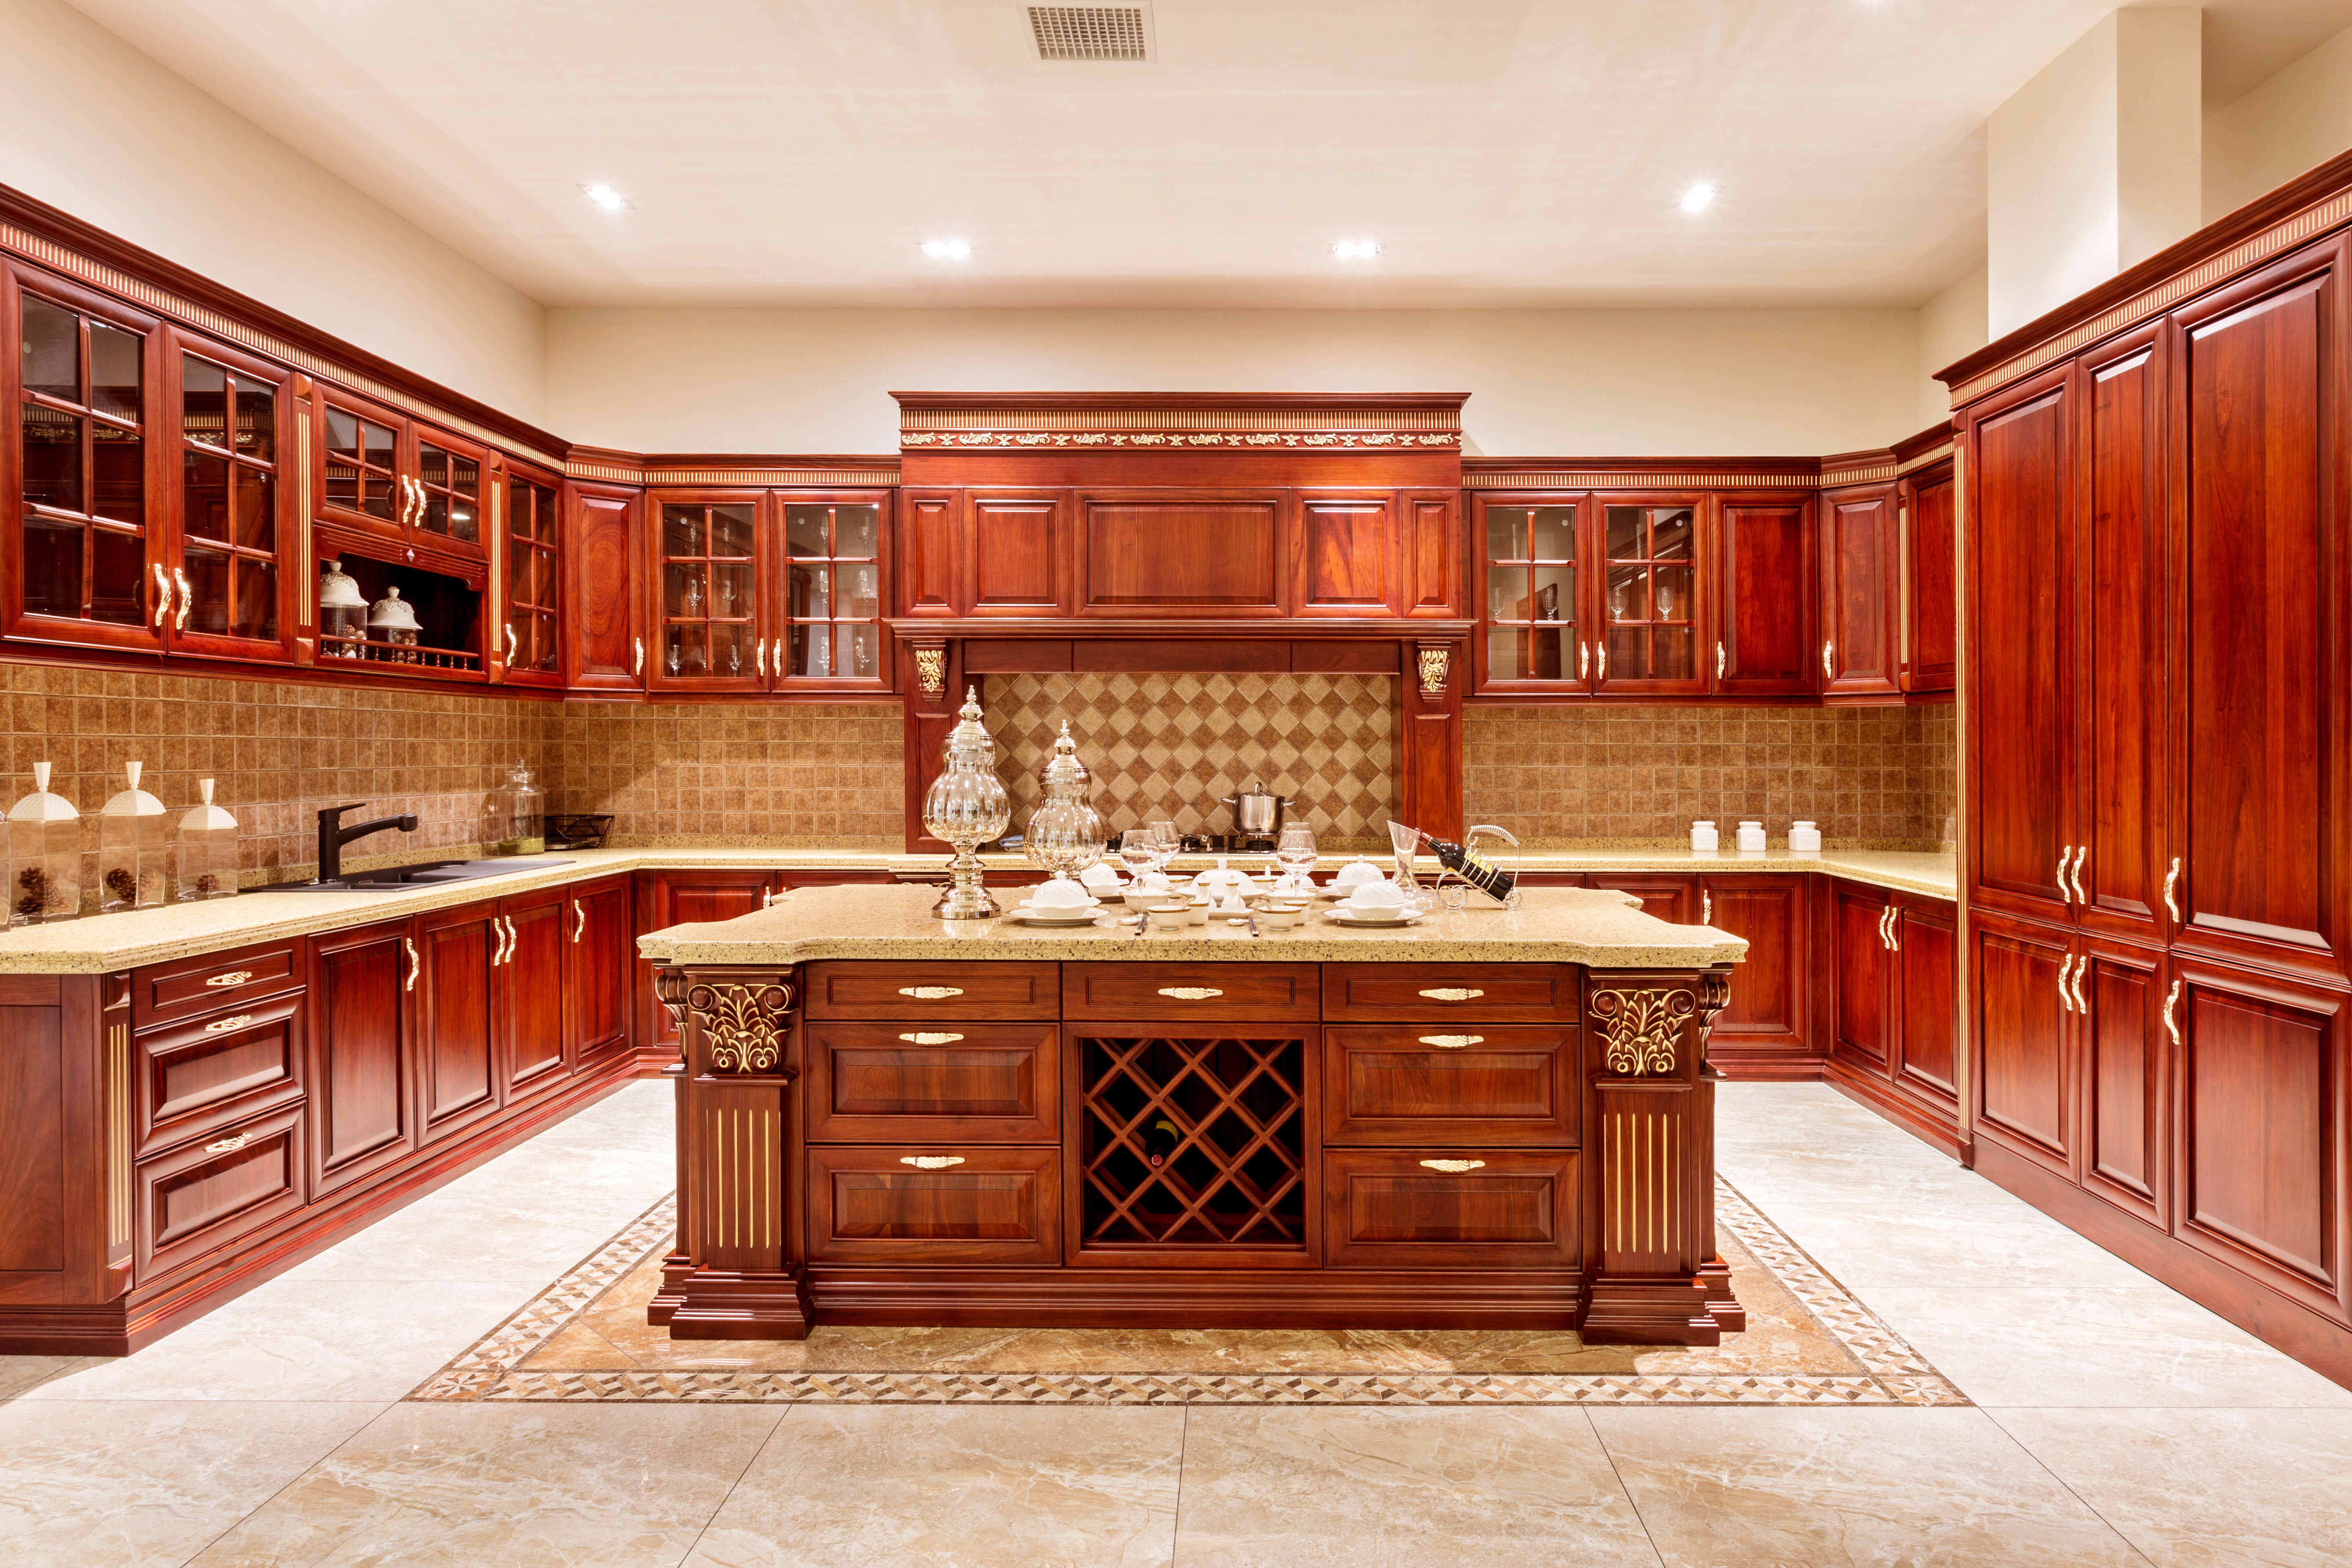 Interior Buying Kitchen Cabinets kitchen cabinets 101 ultimate buying guide designs authority guide